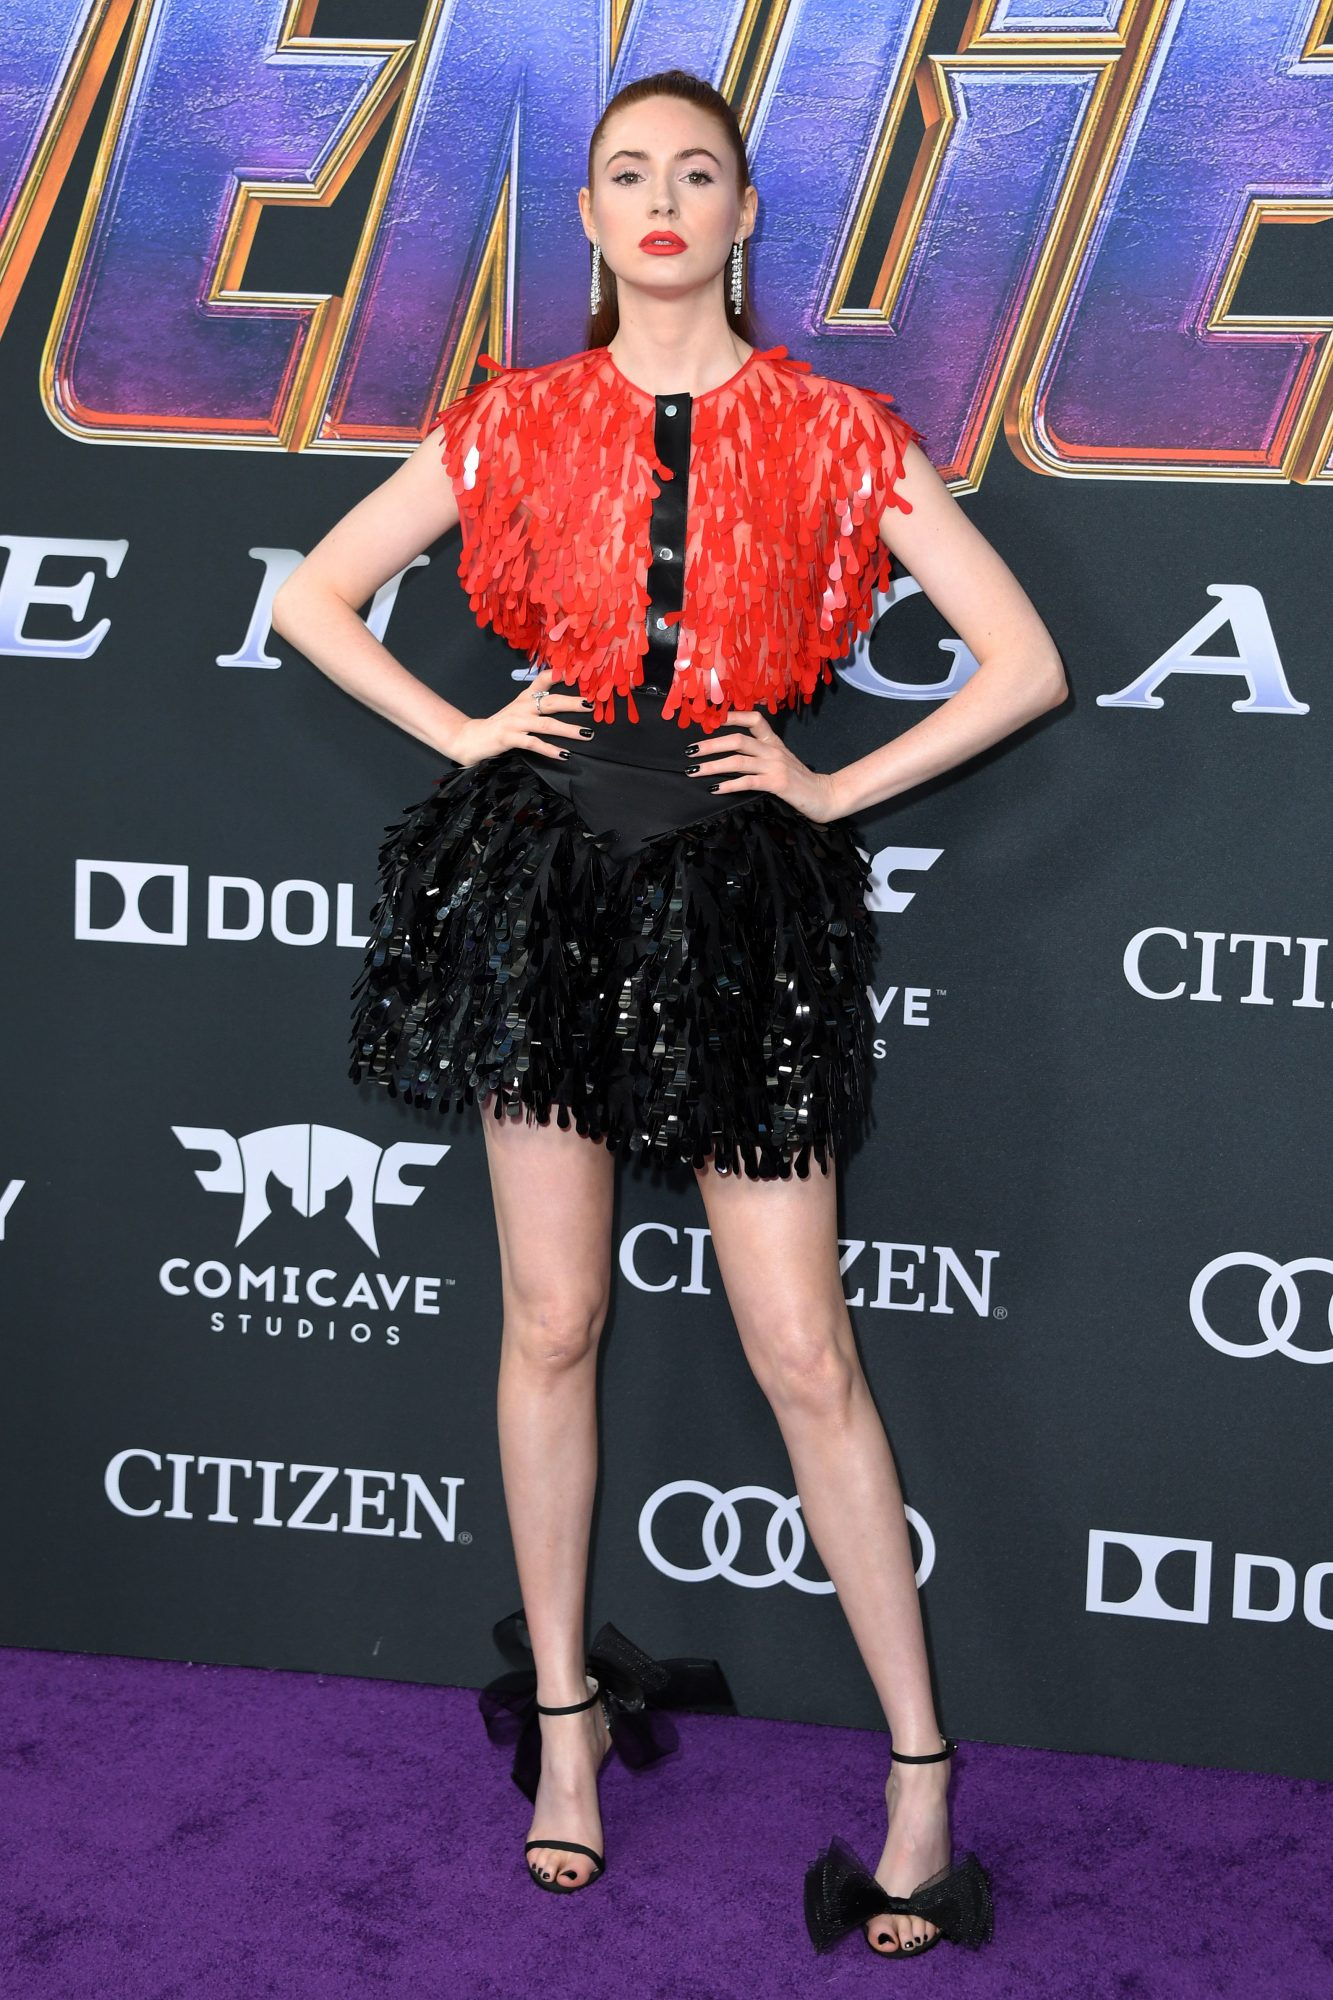 """Scottish actress Karen Gillan arrives for the World premiere of Marvel Studios' """"Avengers: Endgame"""" at the Los Angeles Convention Center on April 22, 2019 in Los Angeles. (Photo by VALERIE MACON/ AFP/ Getty Images)"""